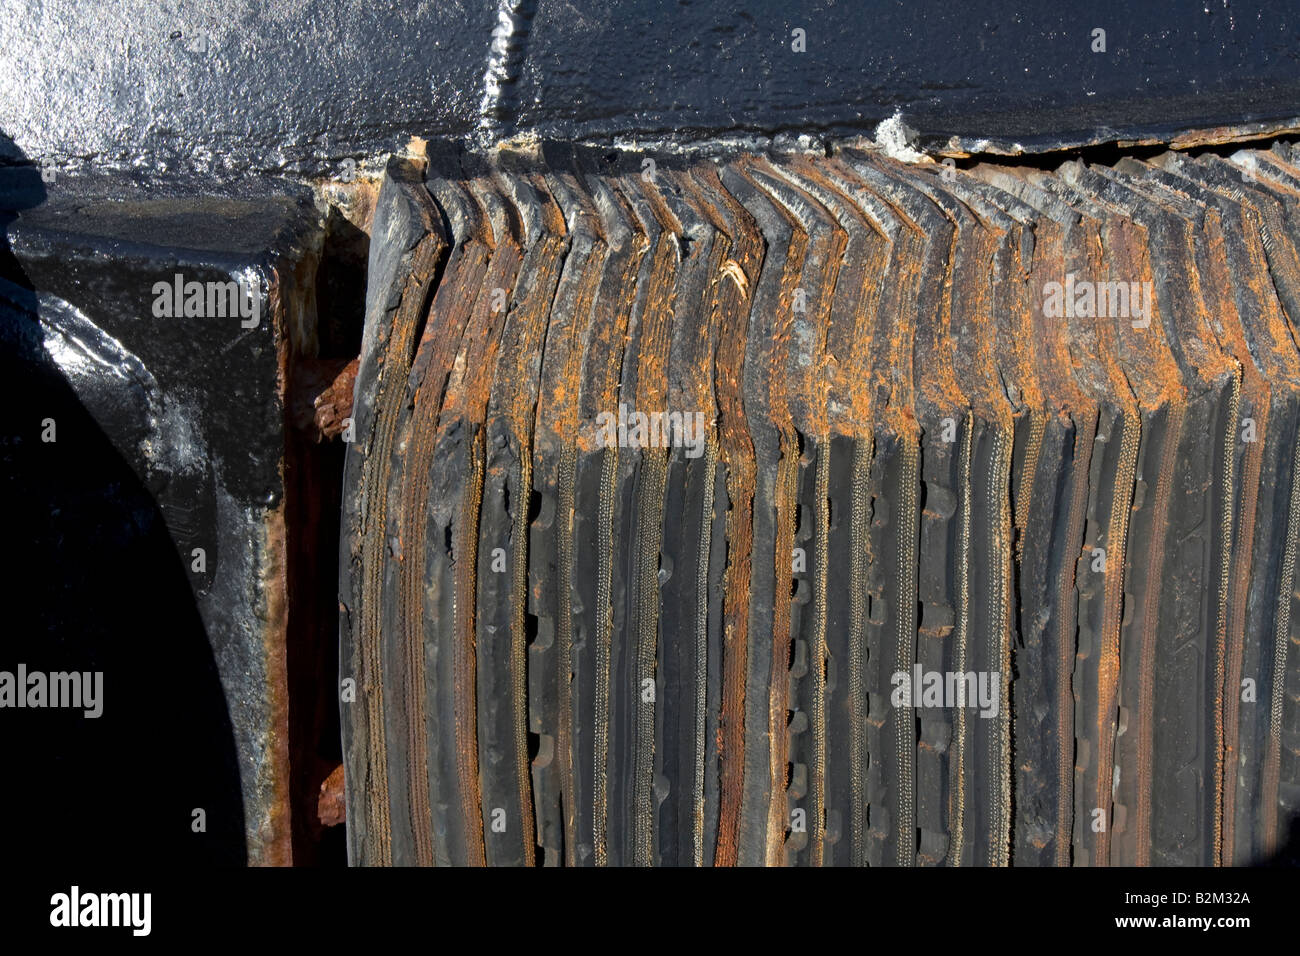 Detail of a bumper to a towboat - Stock Image